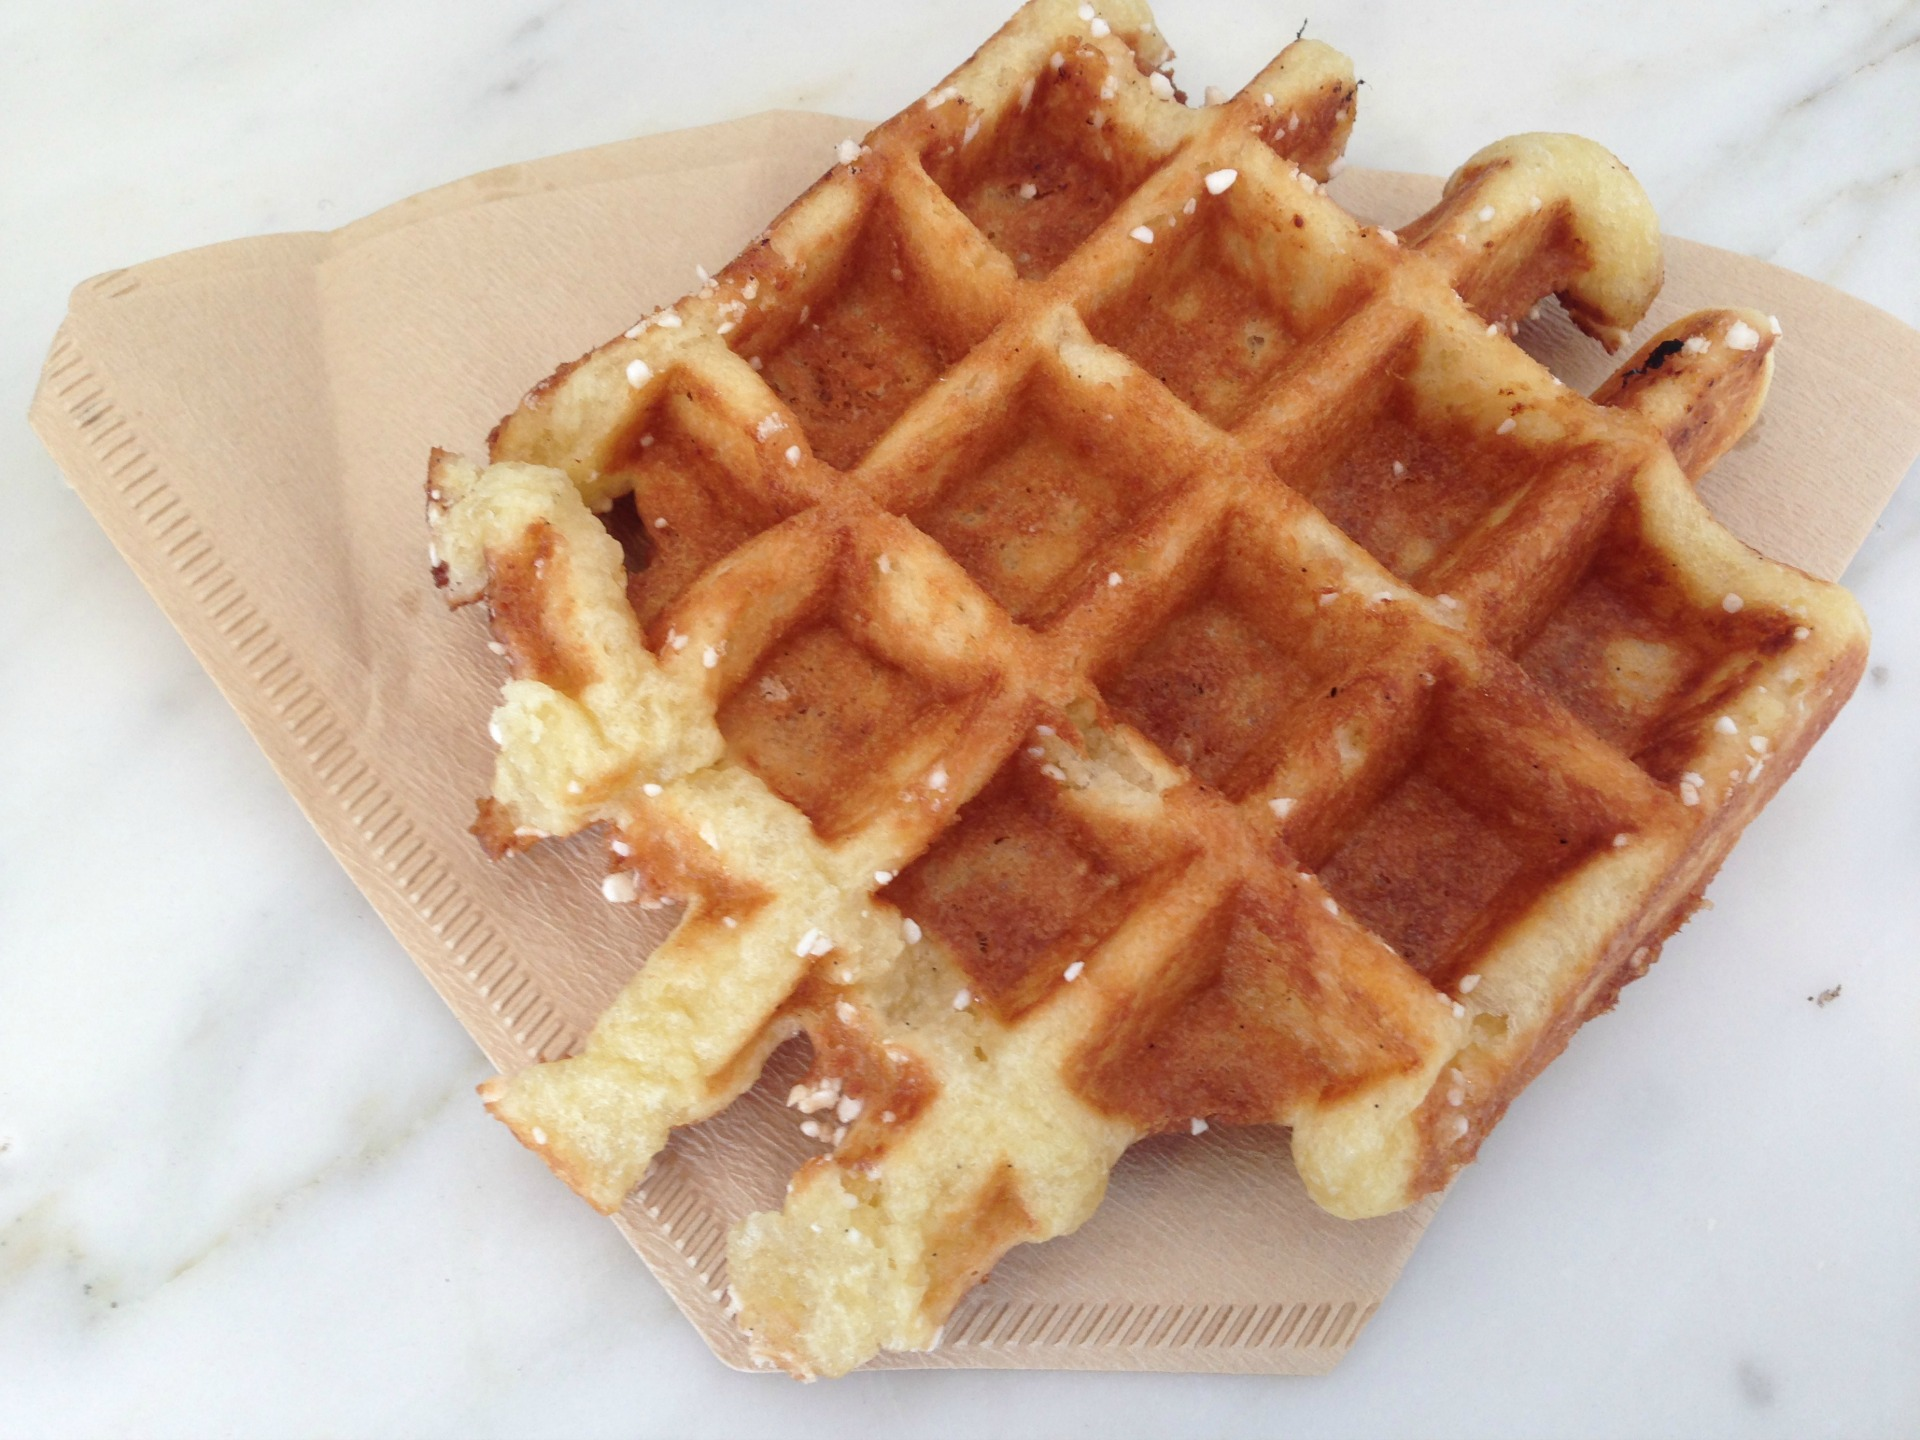 Blue Bottle's liege waffle, served in a coffee filter.